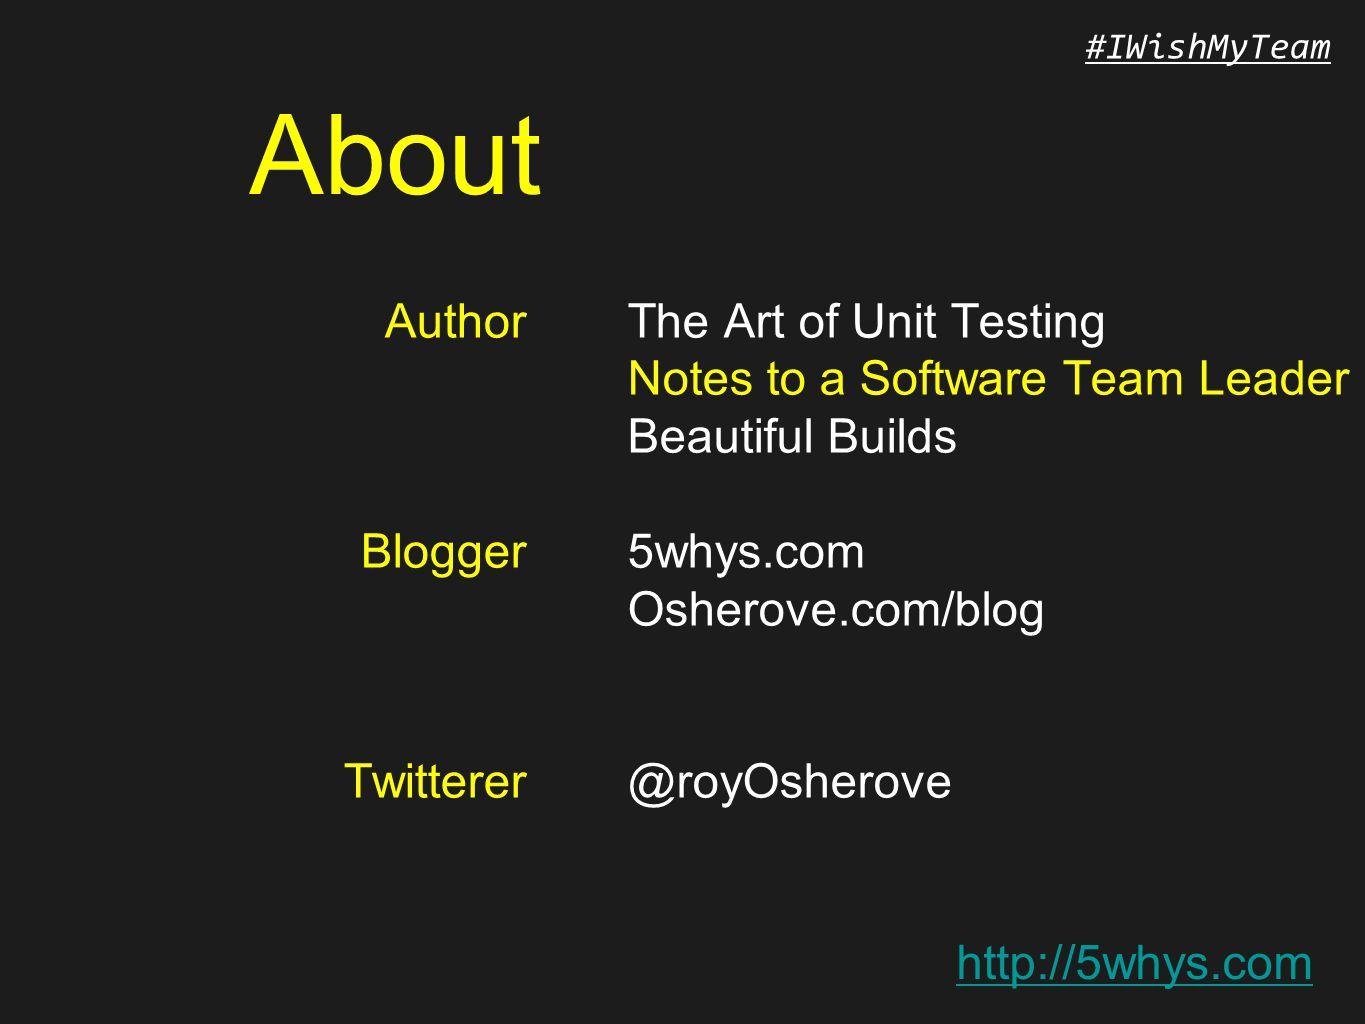 http://5whys.com #IWishMyTeam About Author Blogger Twitterer The Art of Unit Testing Notes to a Software Team Leader Beautiful Builds 5whys.com Osherove.com/blog @royOsherove